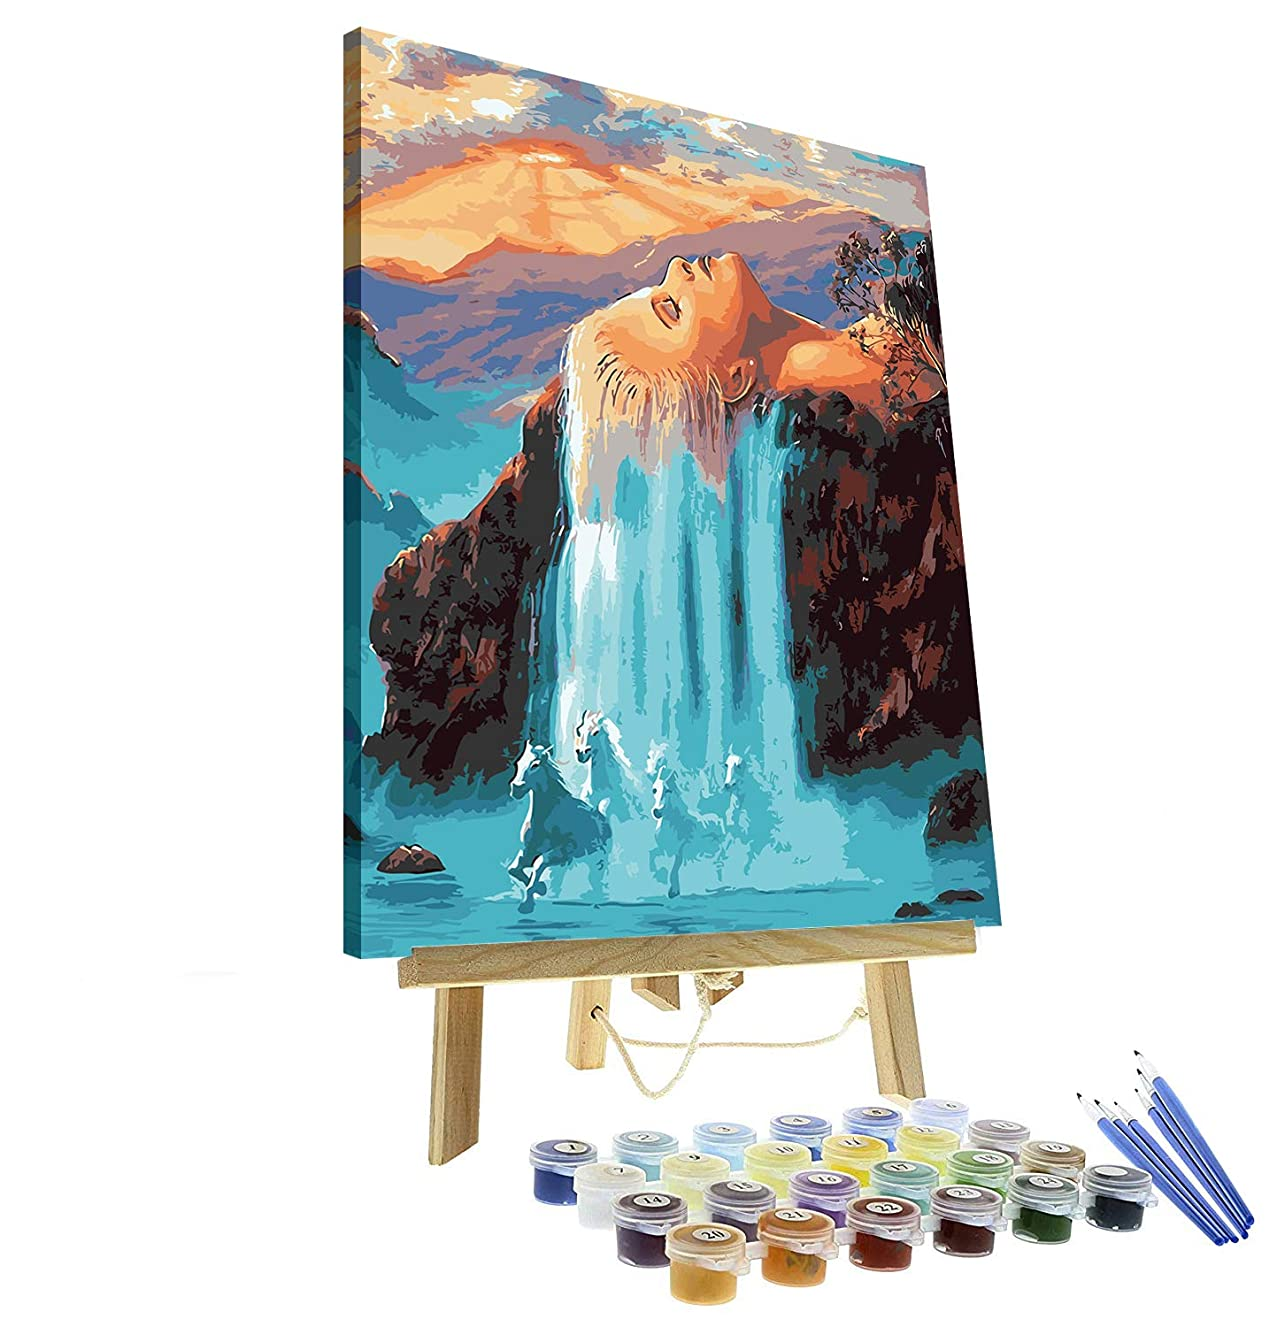 DIY Oil Painting Paint by Numbers Kit for Adults Kids Beginner - Waterfall Surreal Art 12